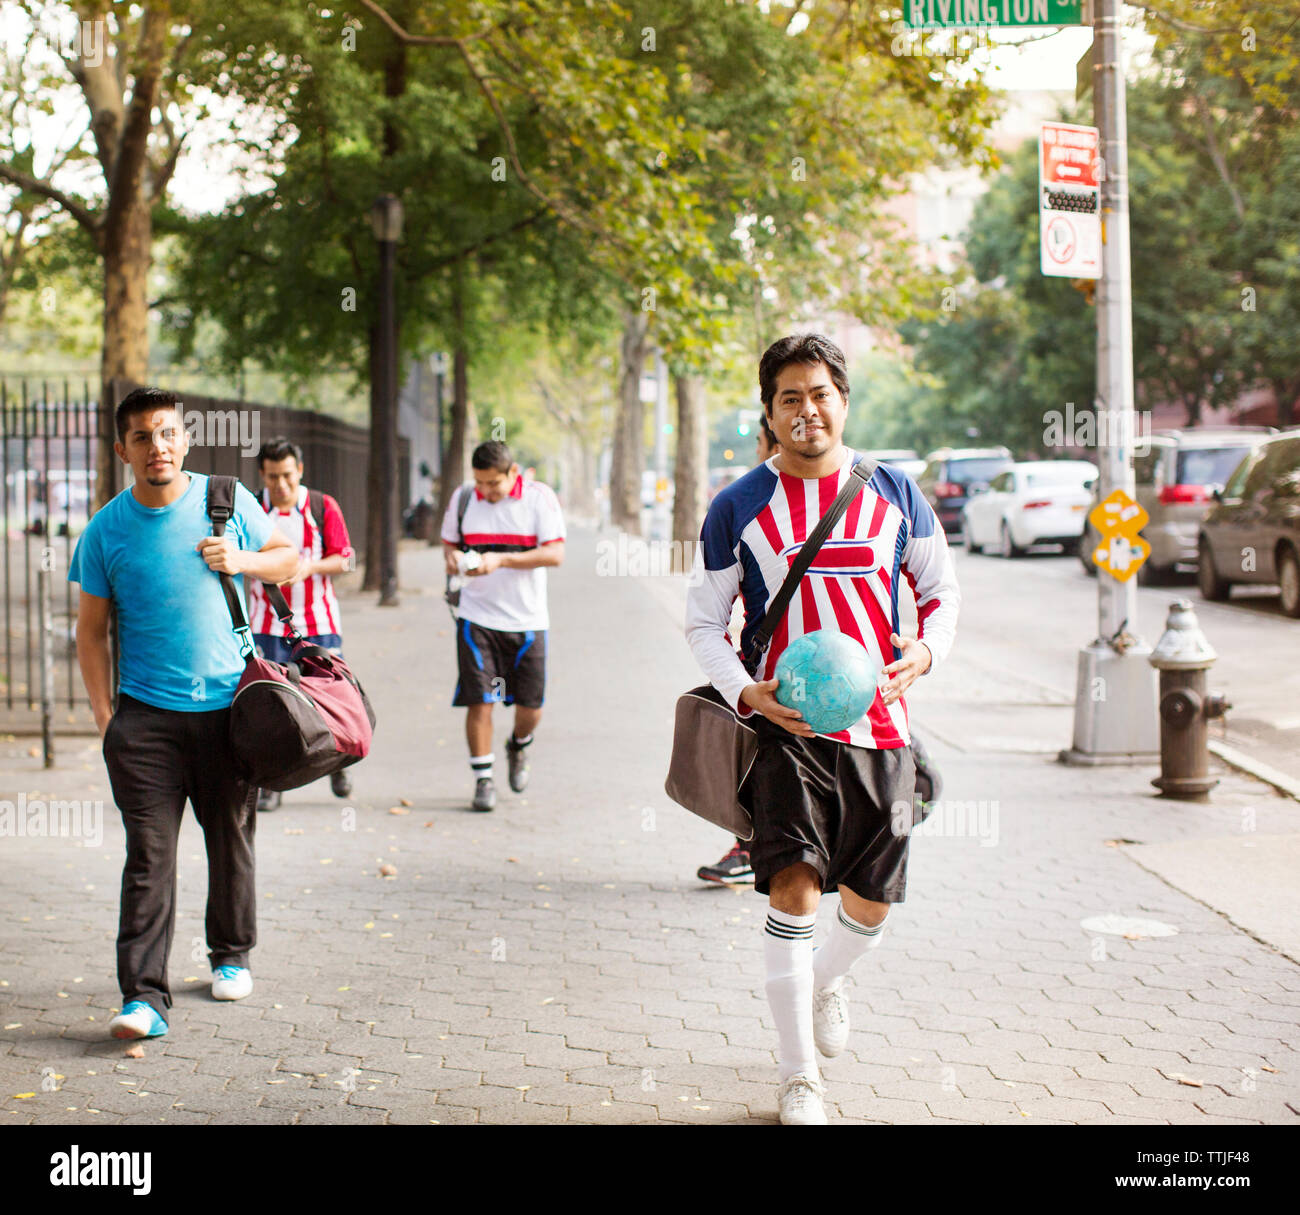 Portrait of soccer players walking on footpath - Stock Image